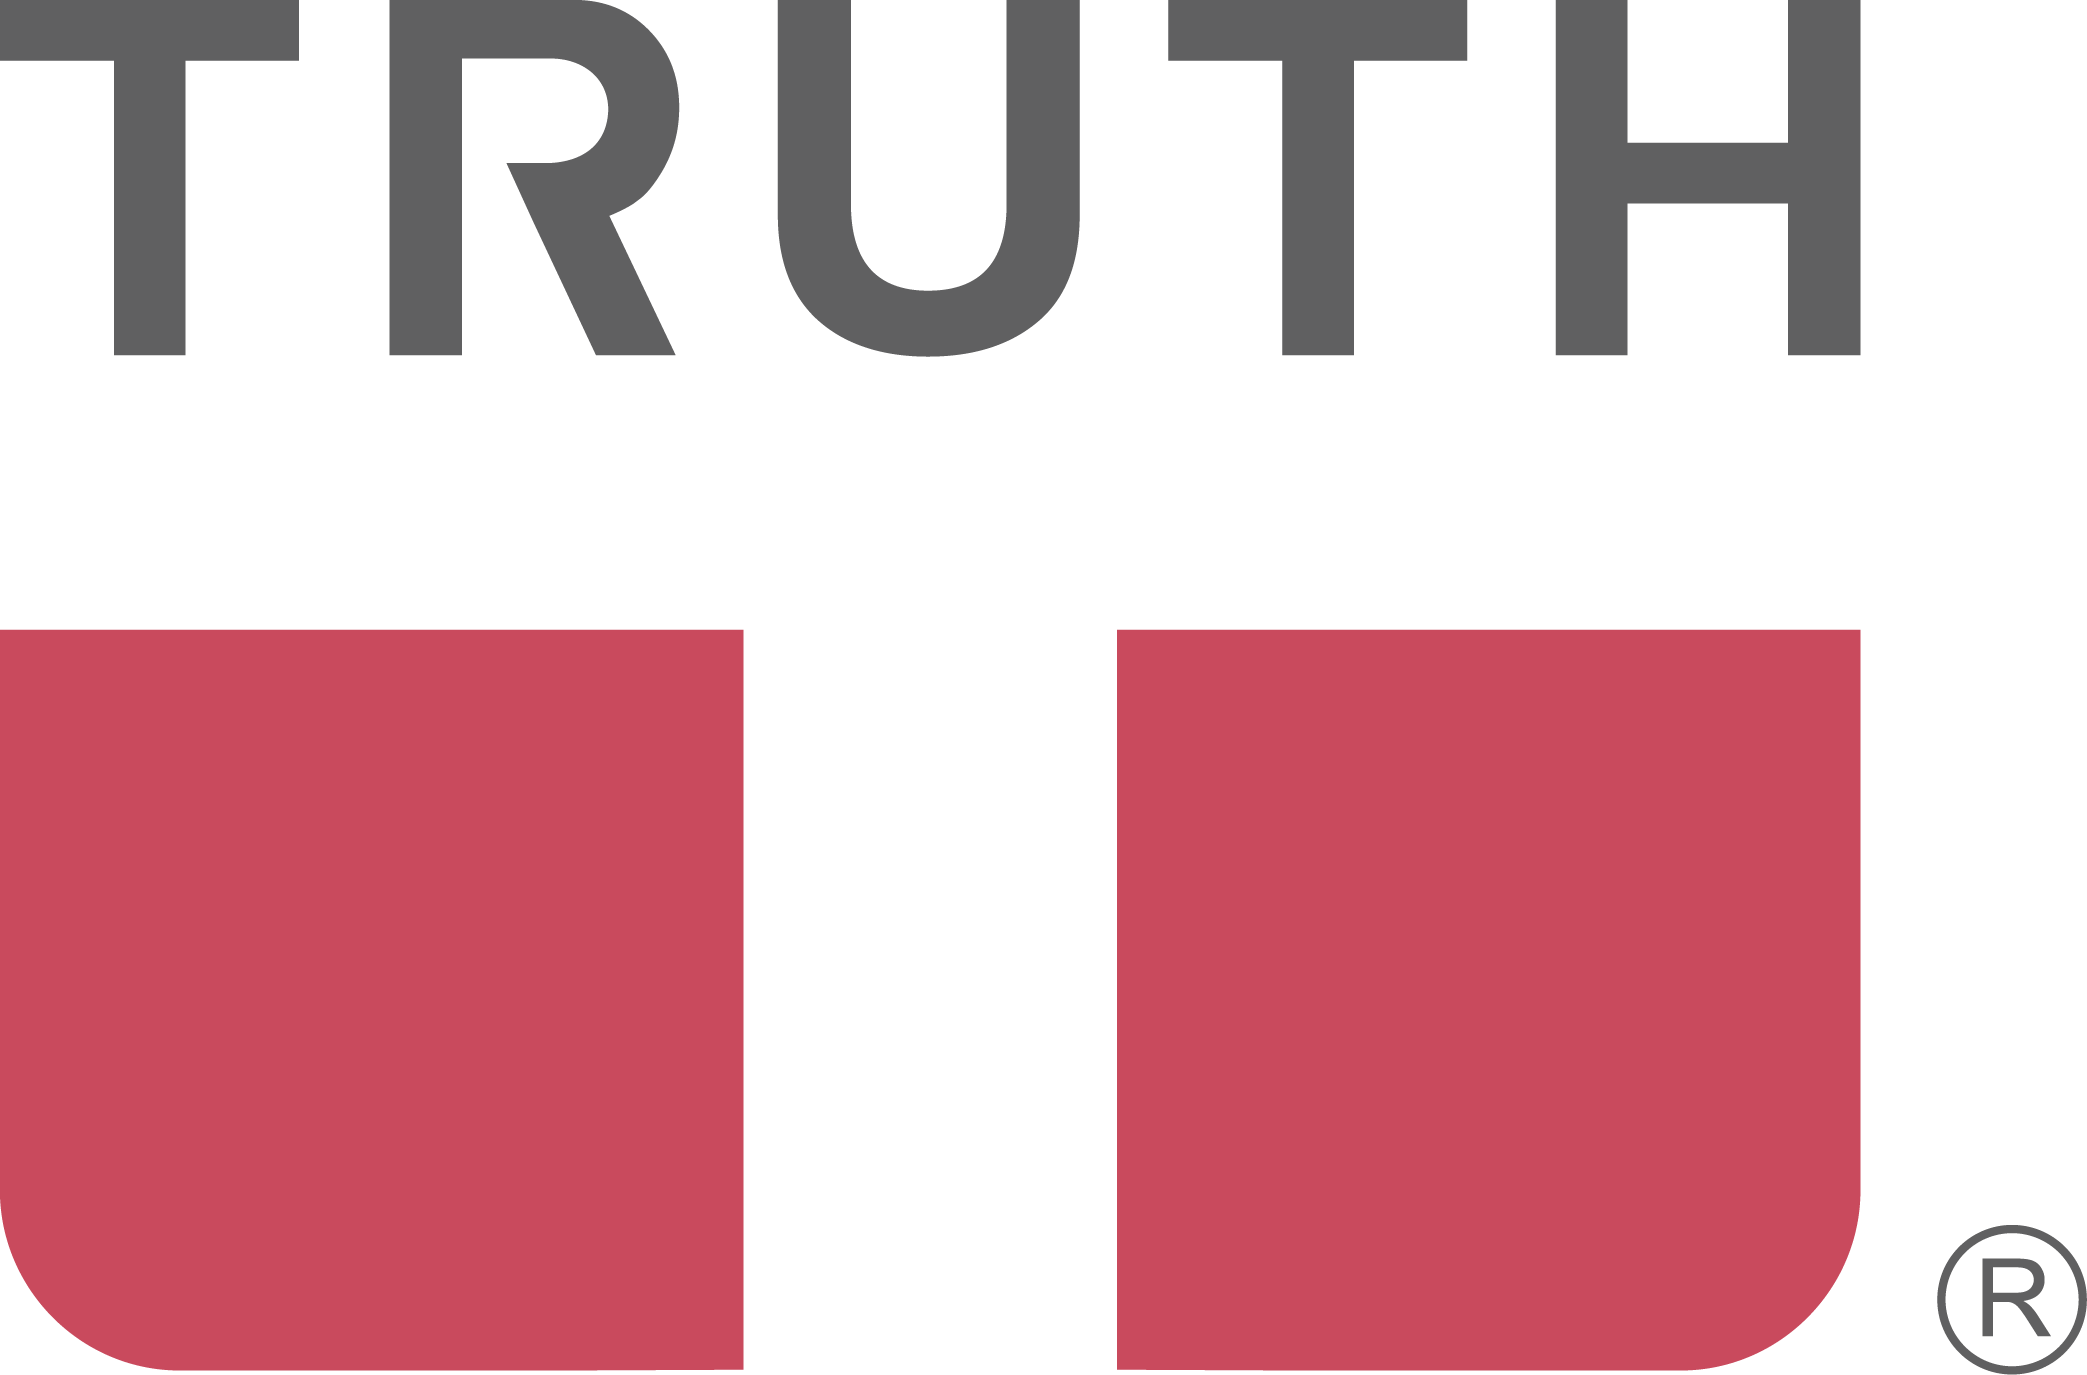 truth-logo-official-C74A5C-606161